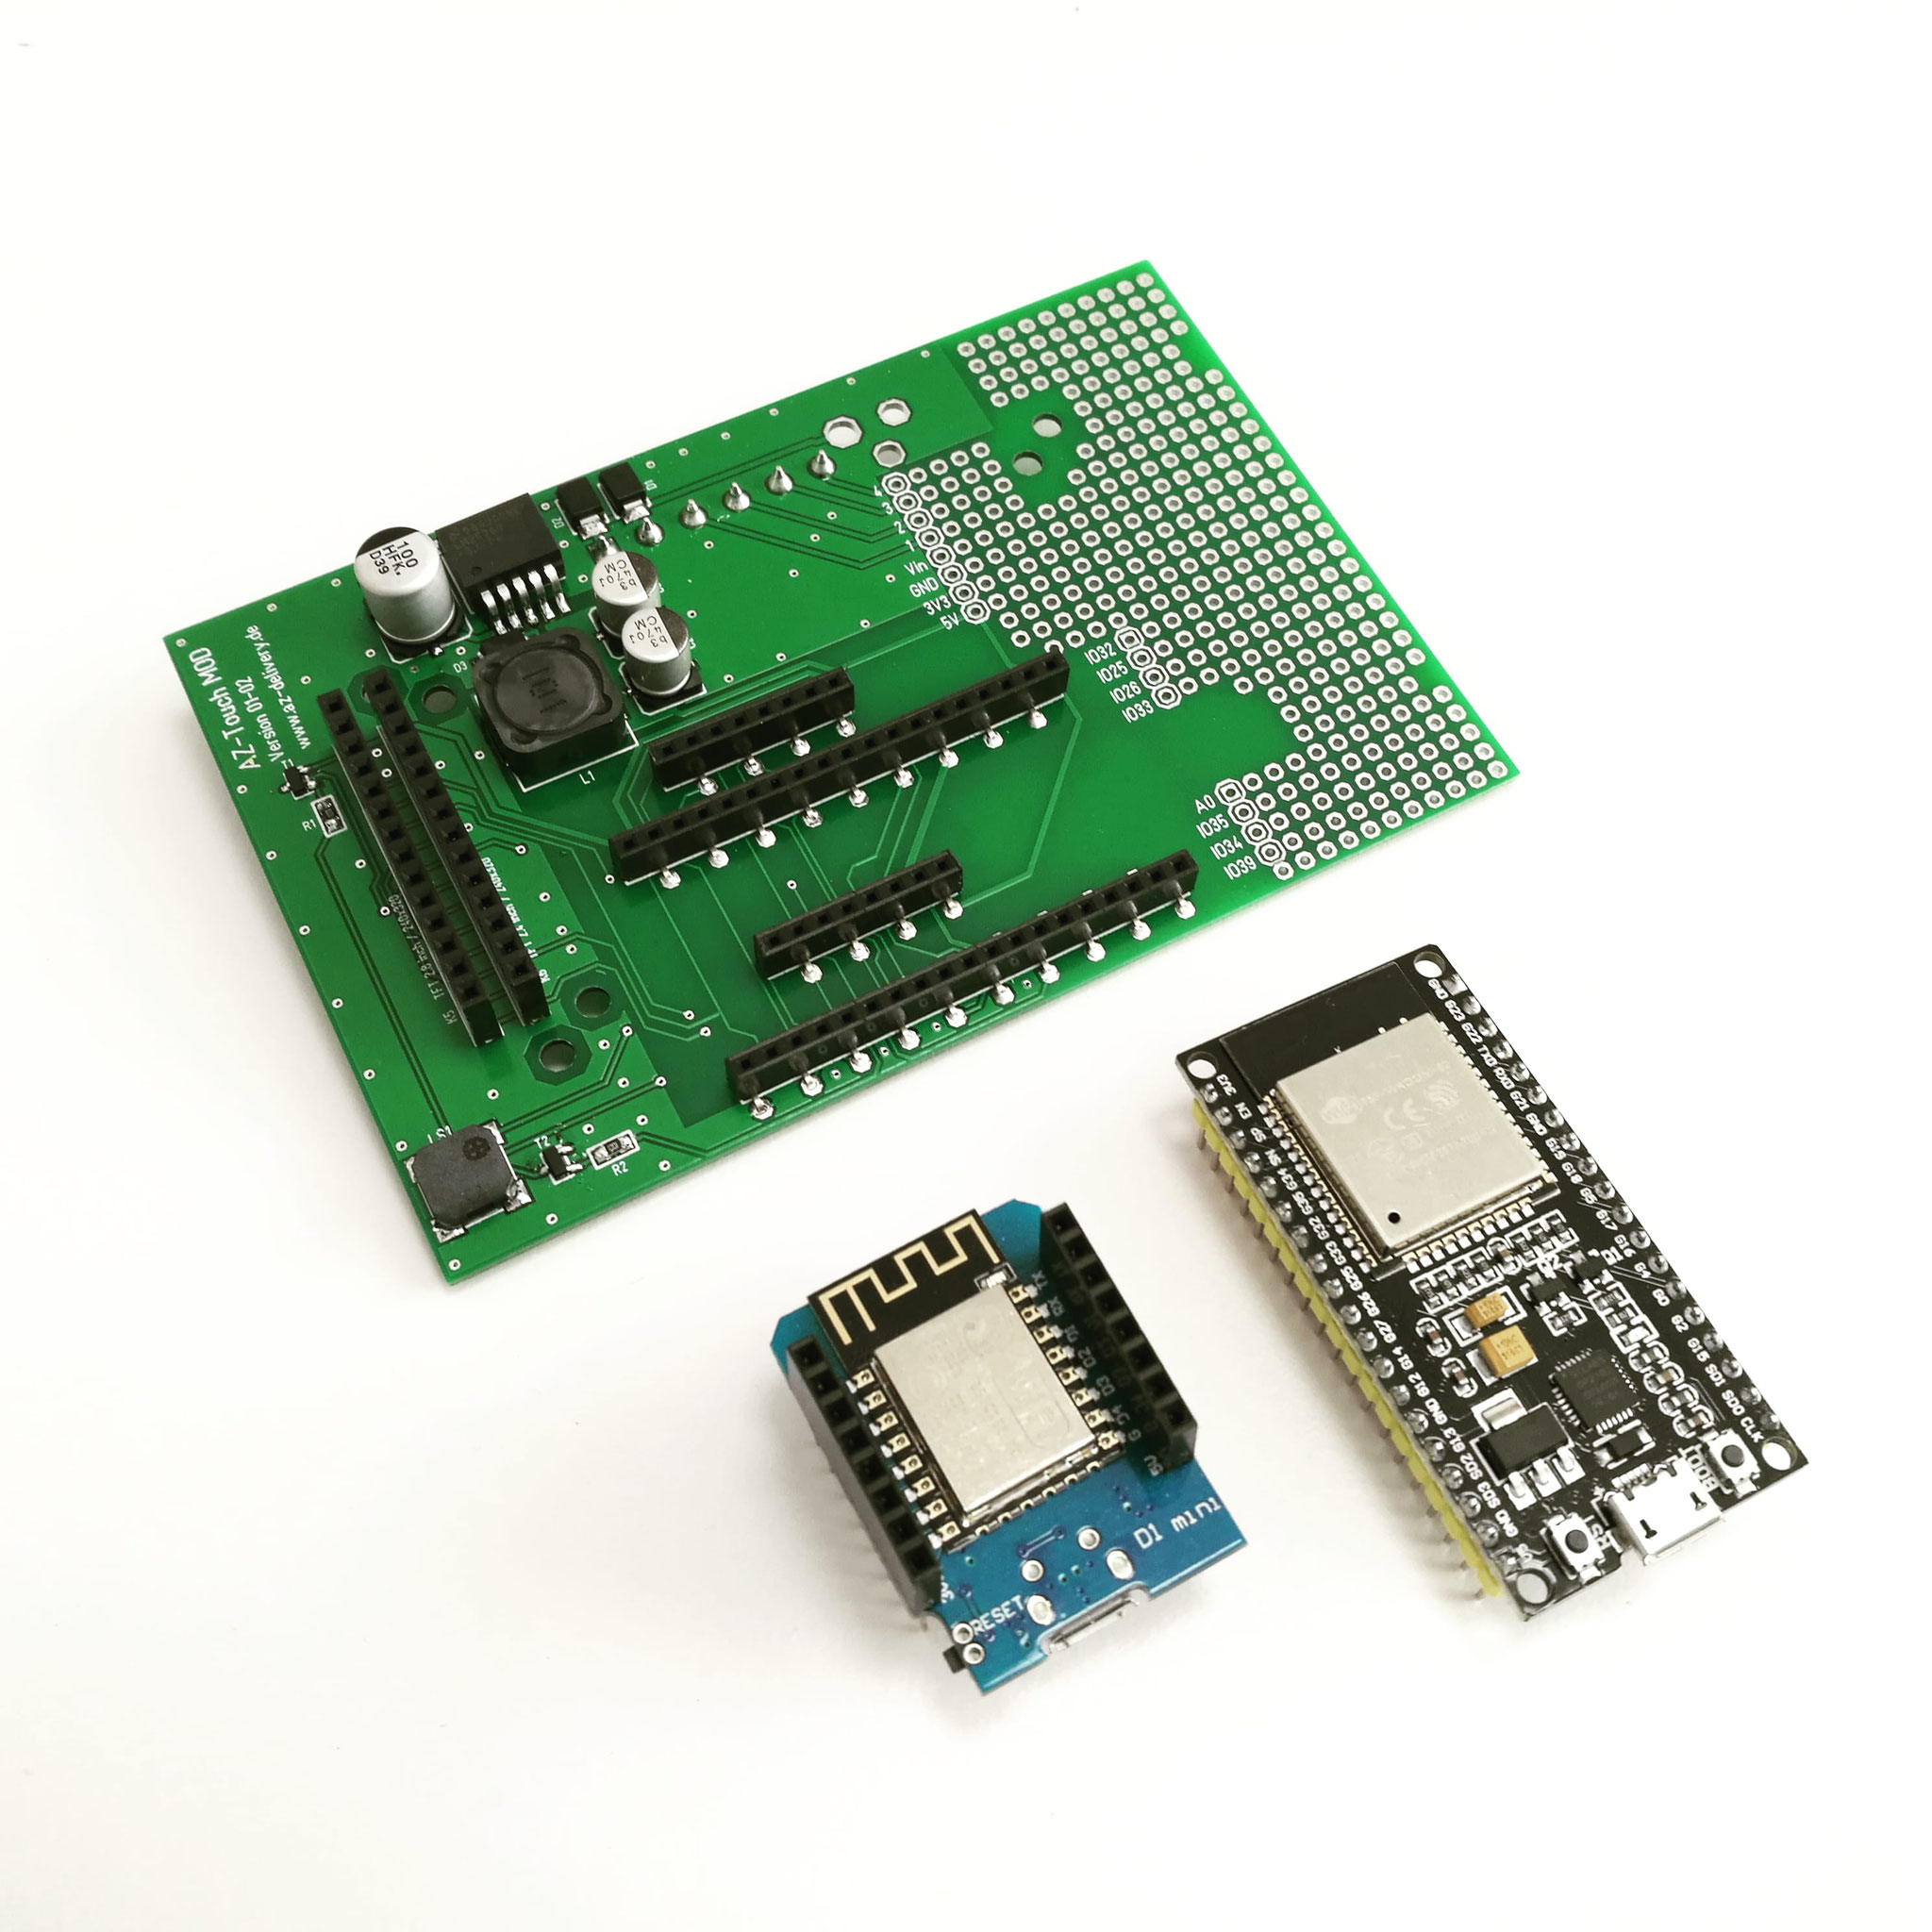 AZ-Touch pcb with  compatible ESP8266 and ESP32 modules